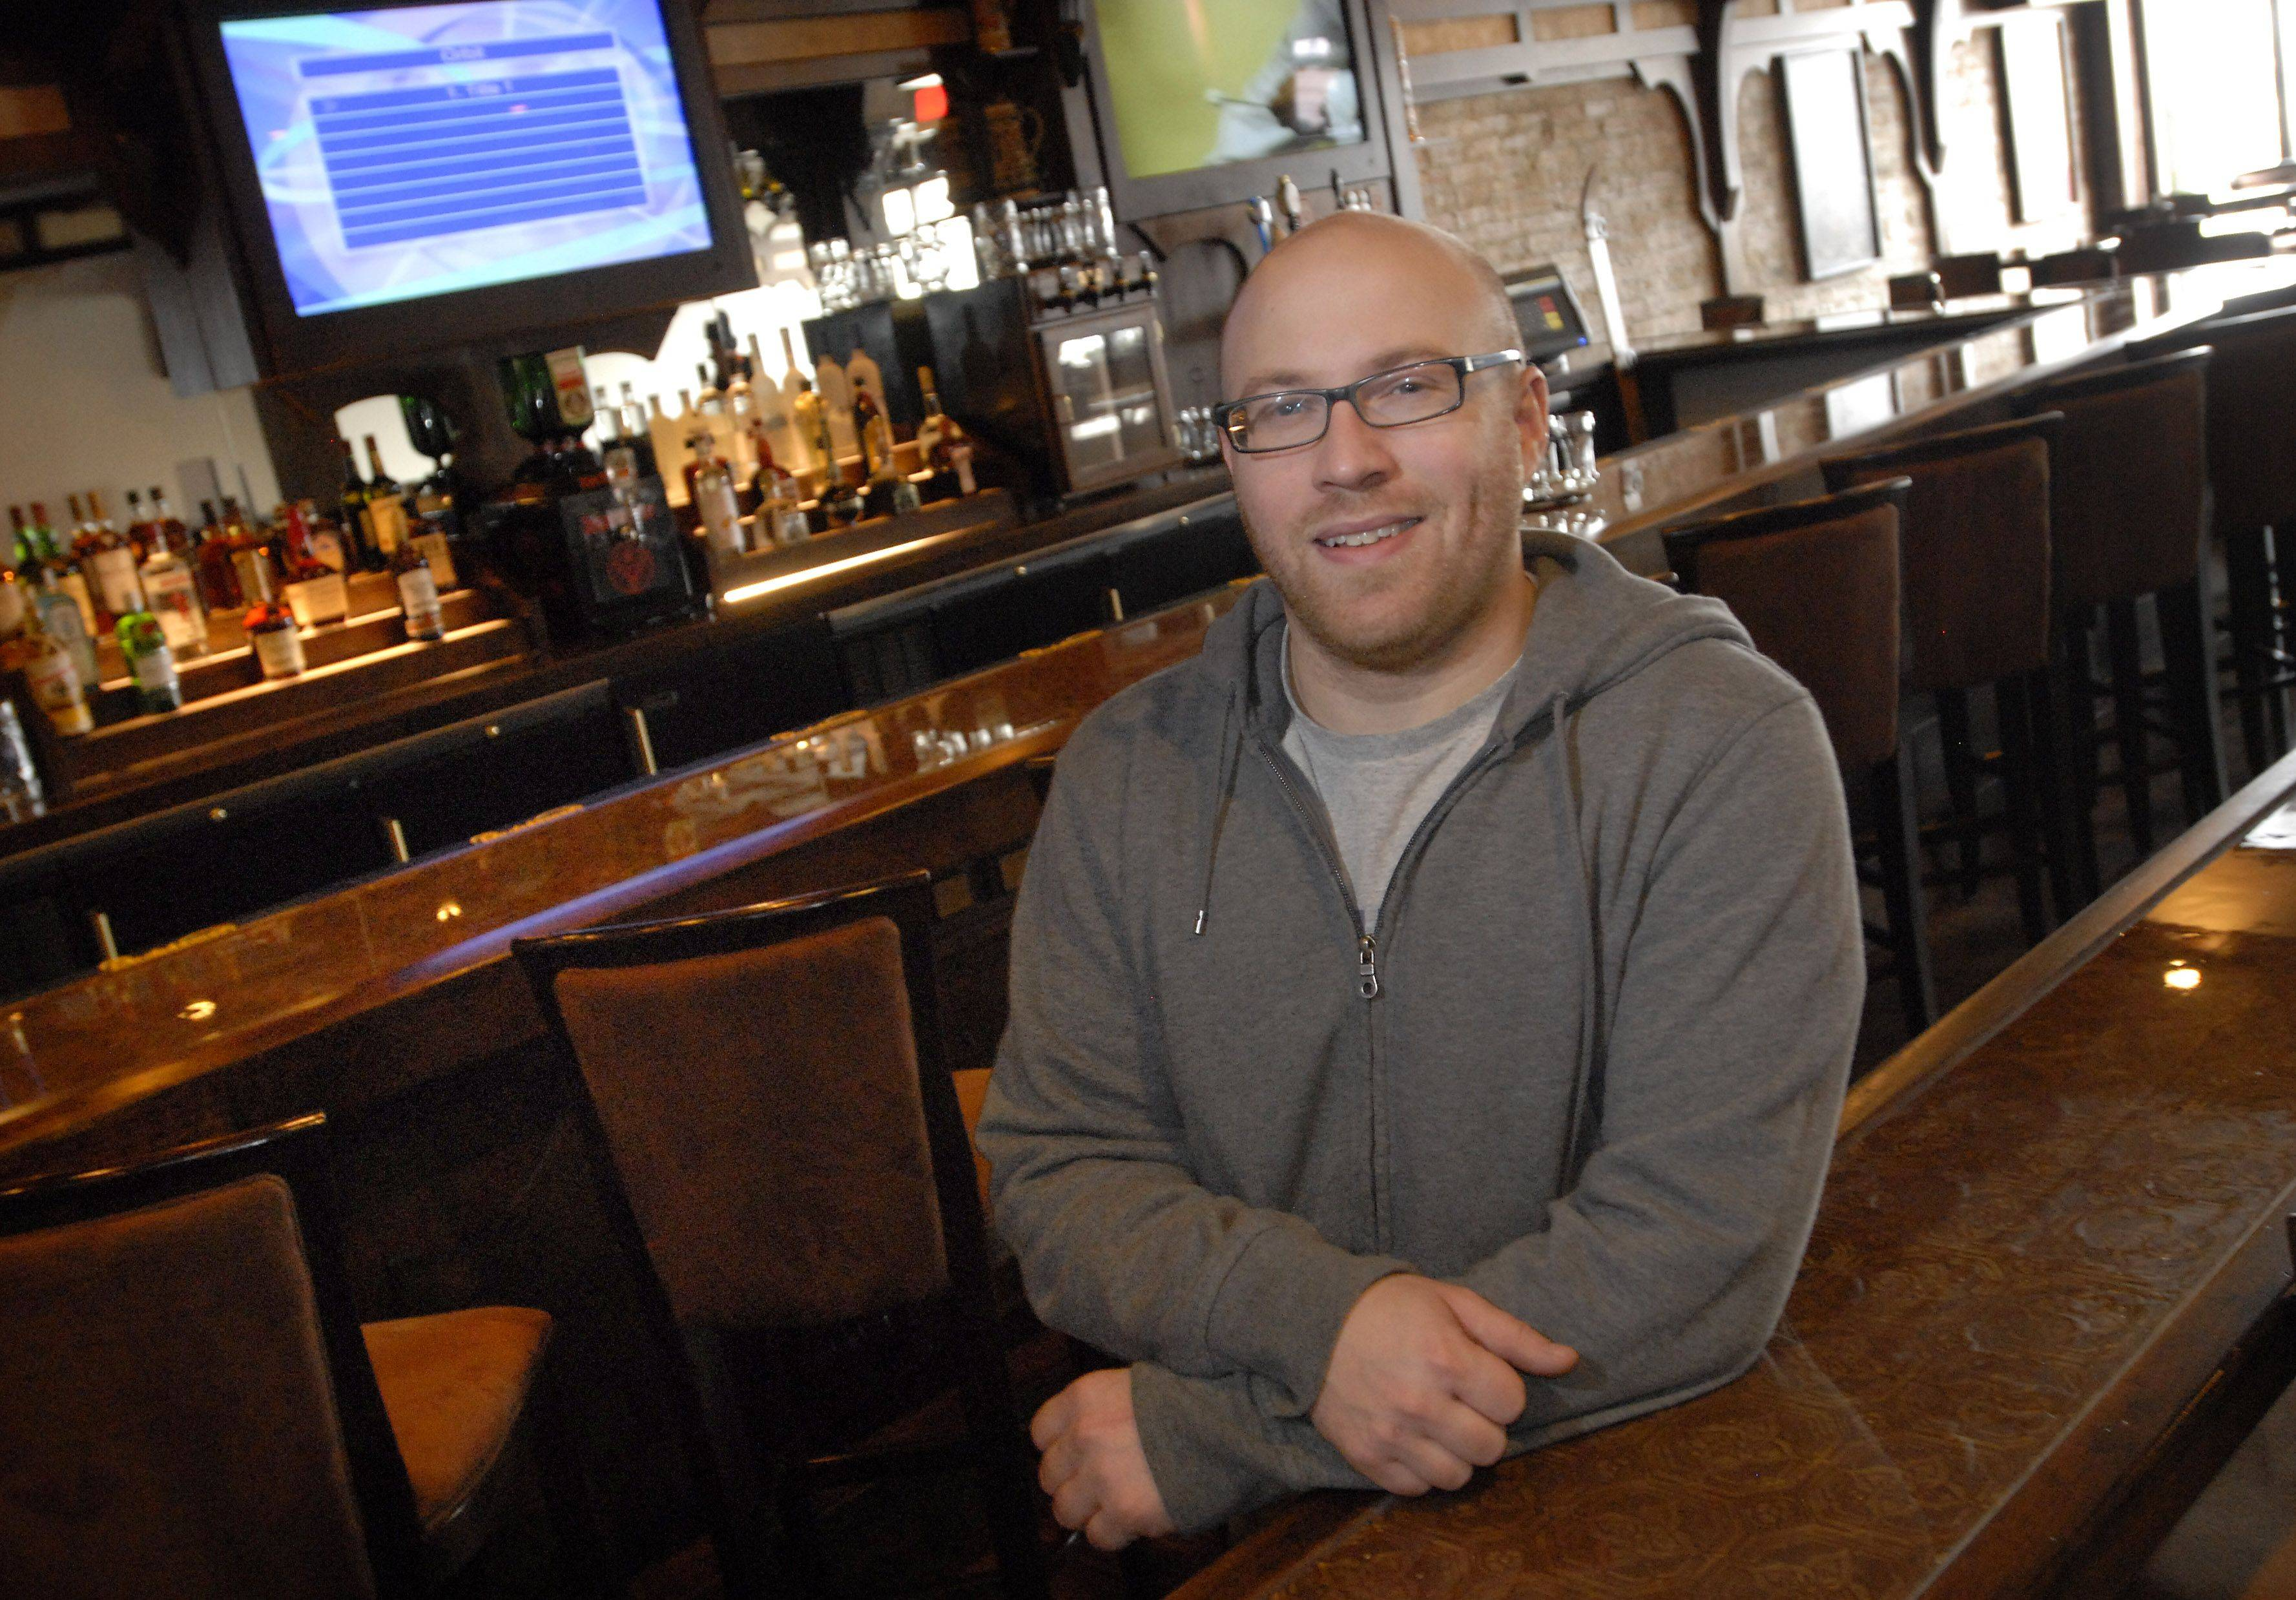 Jason Bauer, who with his family owns Bauer's Brauhaus in downtown Palatine, is gearing up to open his new German restaurant on Jan. 24.